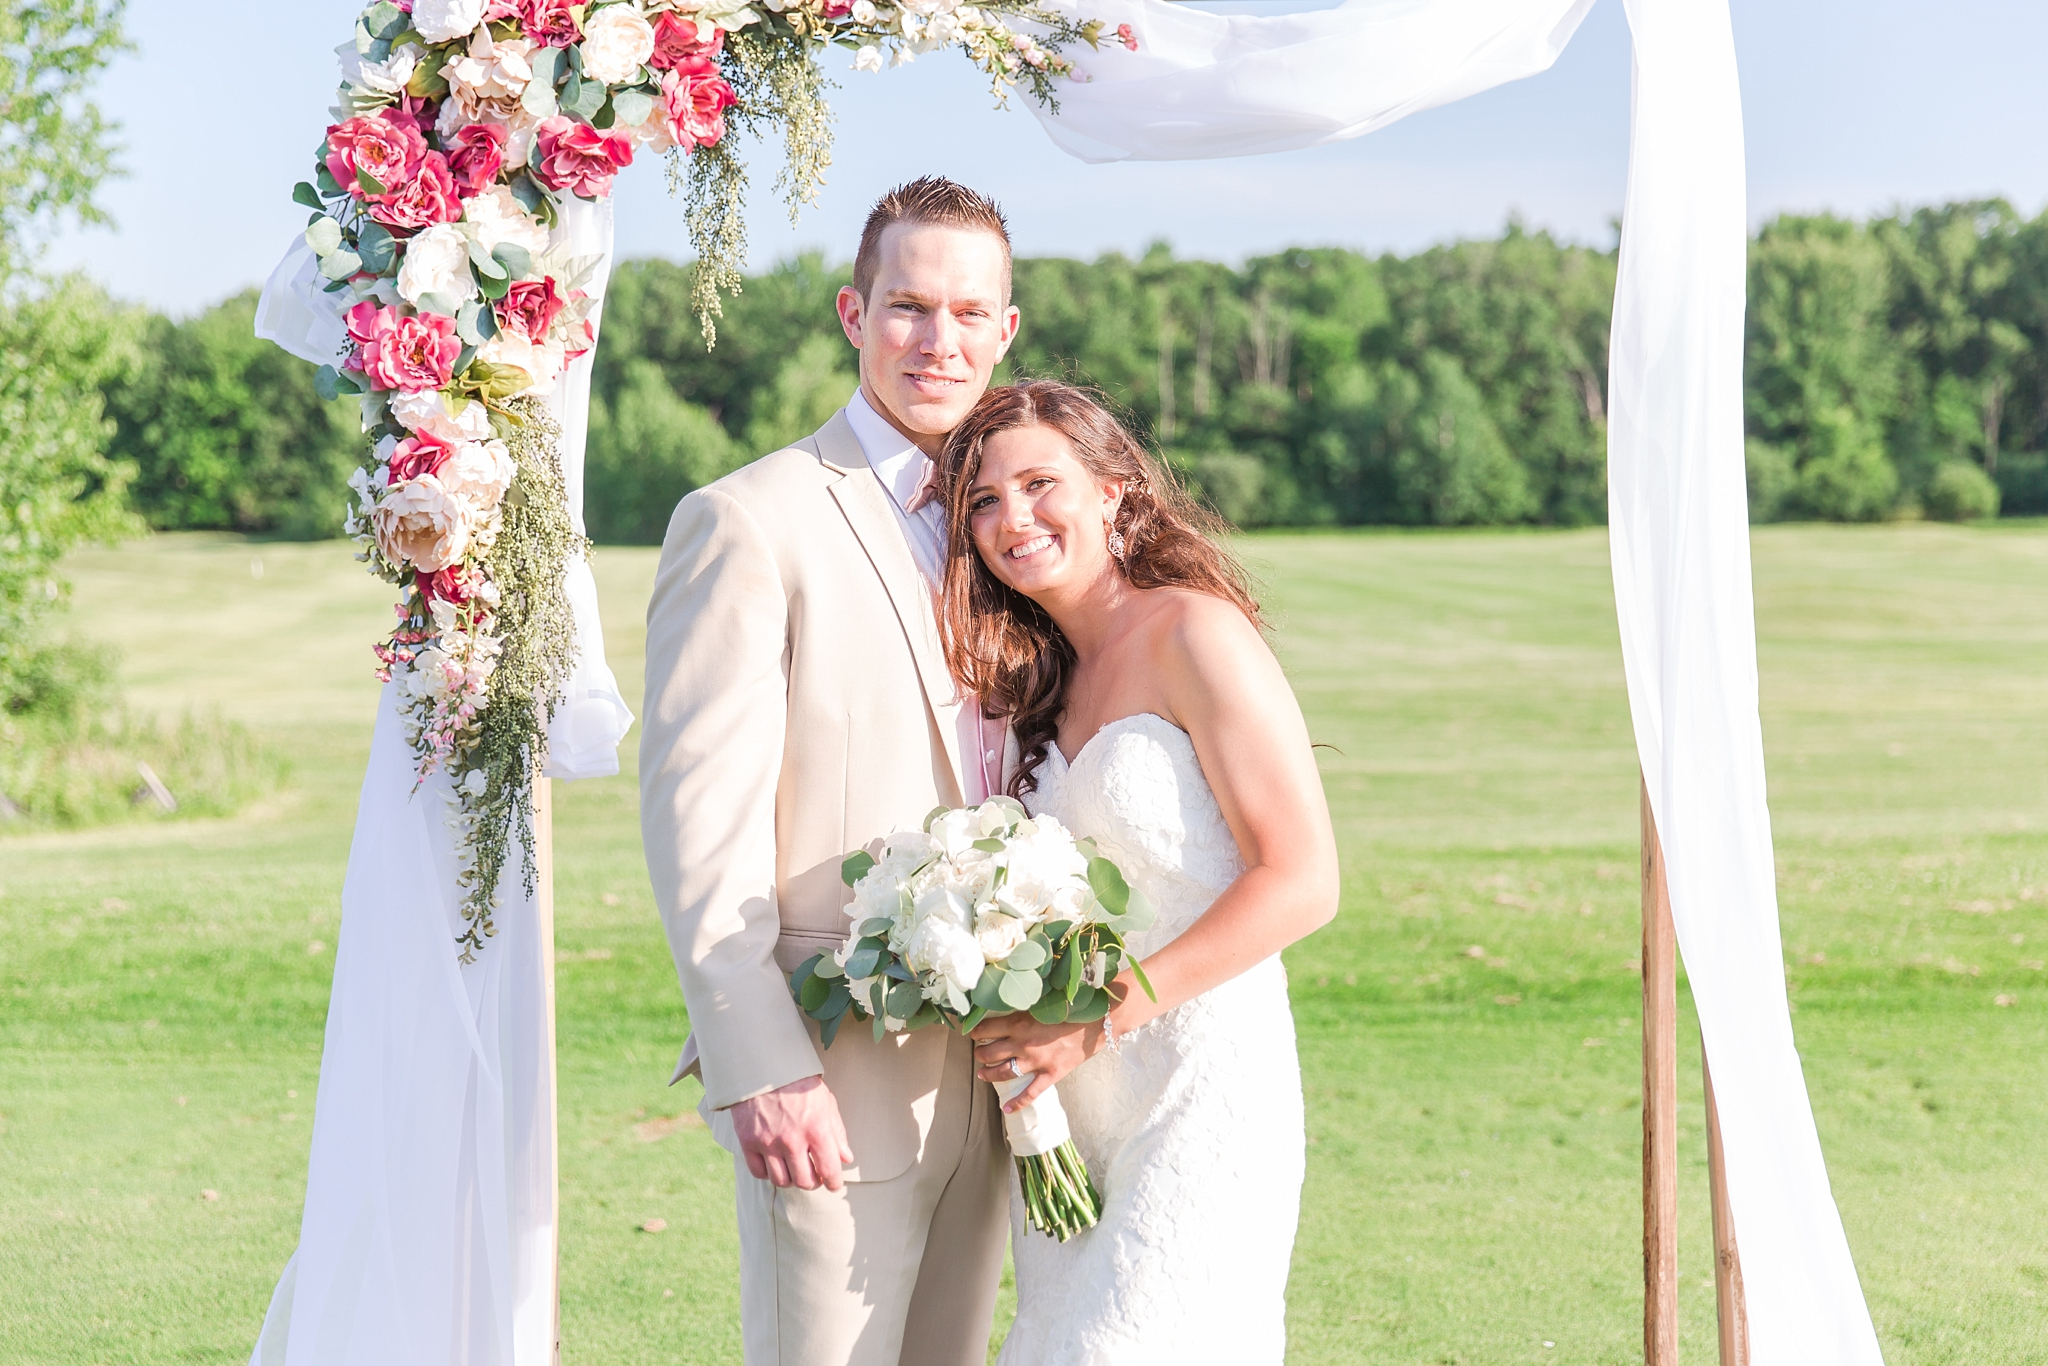 candid-timeless-wedding-photos-at-the-captains-club-in-grand-blanc-michigan-by-courtney-carolyn-photography_0083.jpg